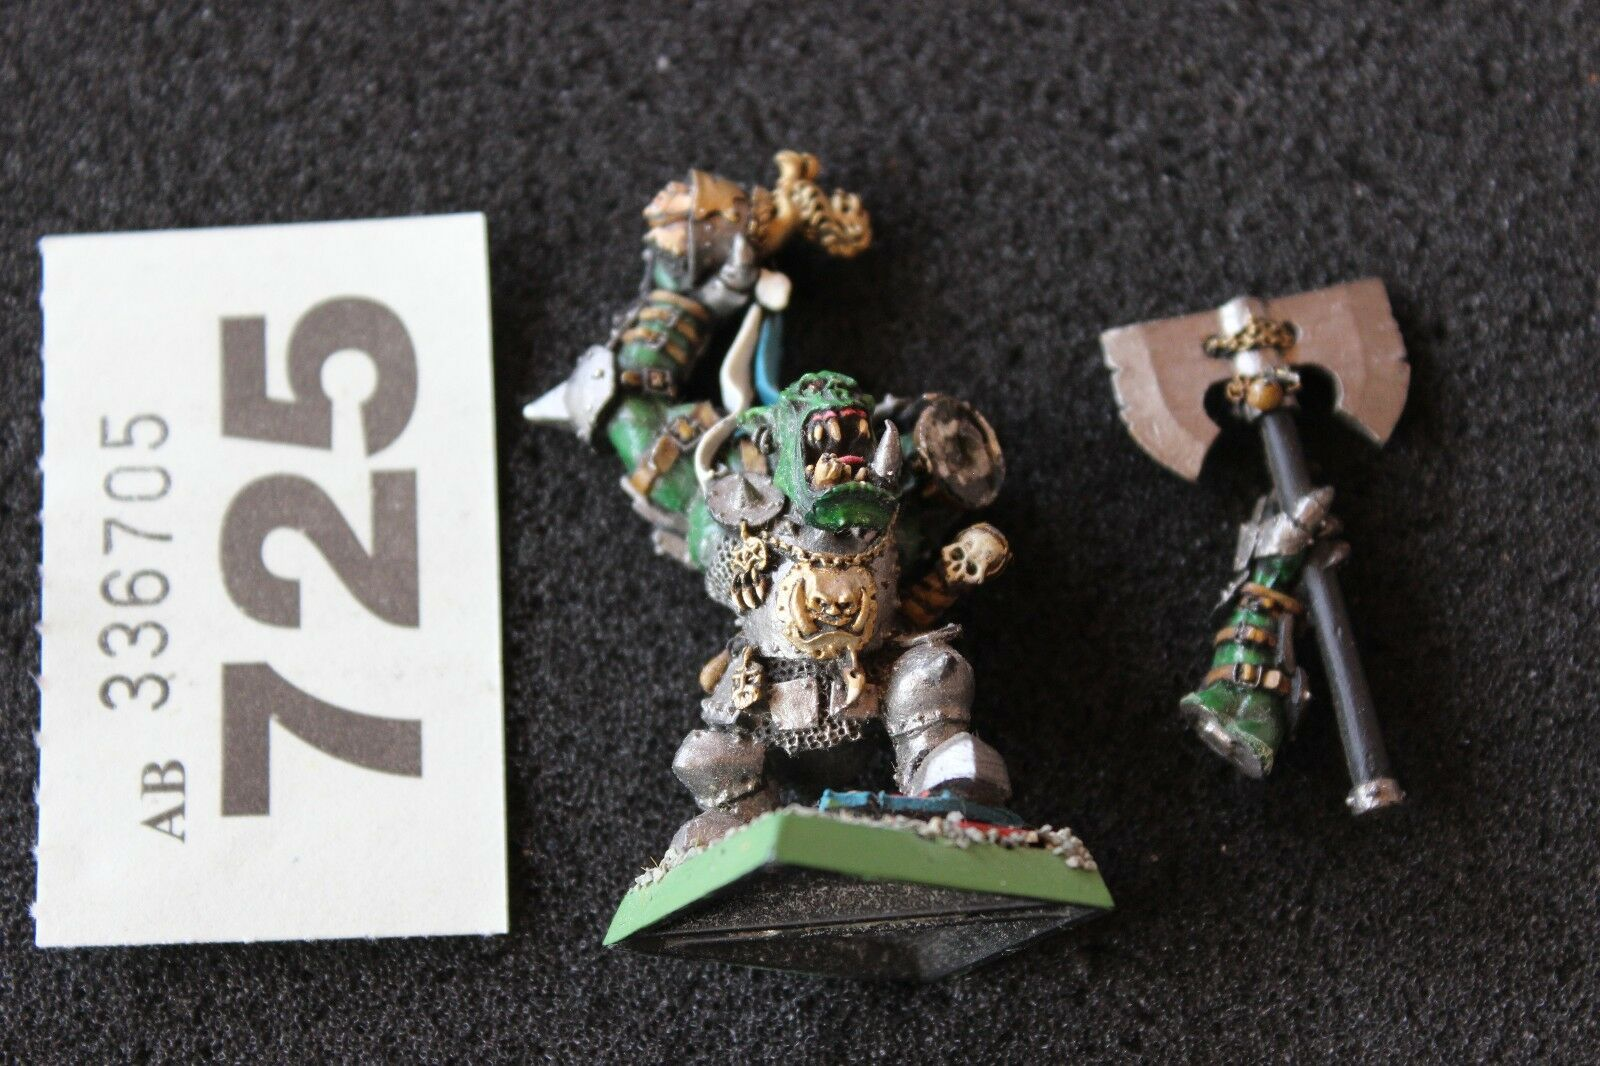 Games Workshop Warhammer Fantasy Grimgor Ironhide Orcs Warlord Metal Painted